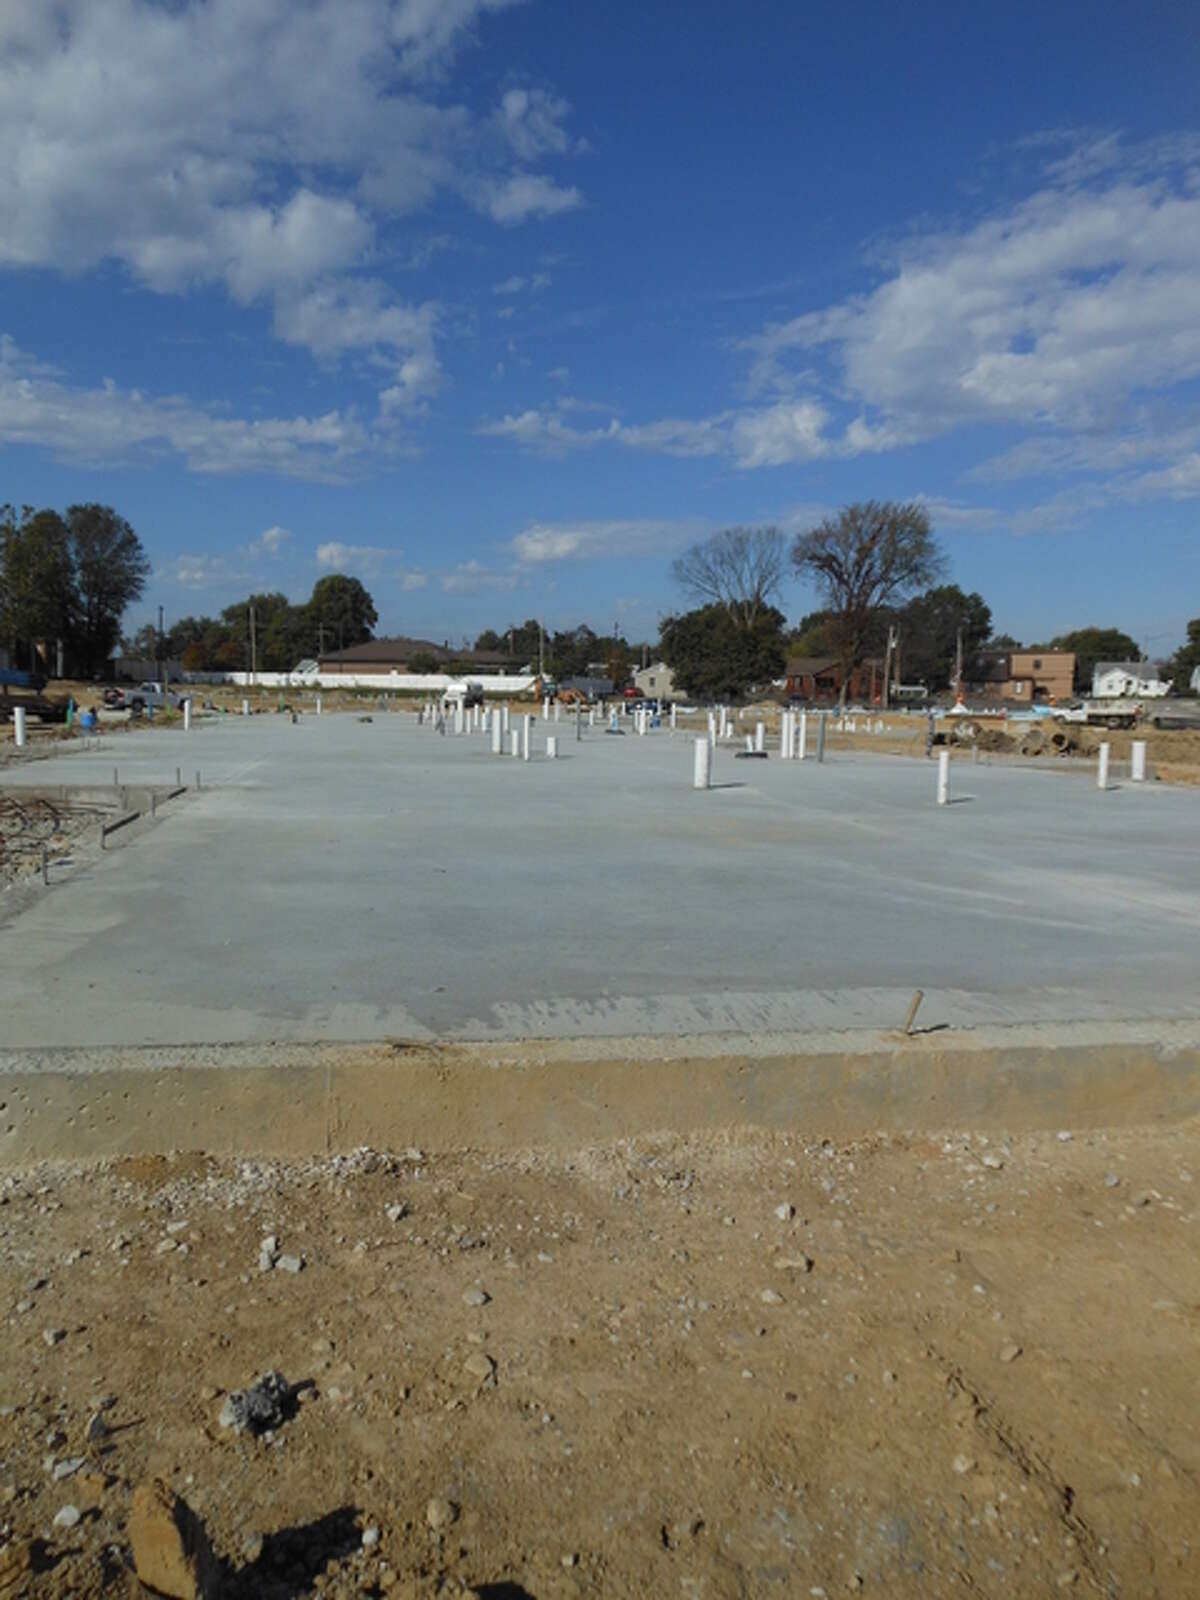 A concrete pad awaits construction workers from Morrissey Construction Co., of Godfrey, on which to build one of 13 apartment buildings at Madison County Housing Authority's former Northgate complex, to be called Woodland Park apartments.